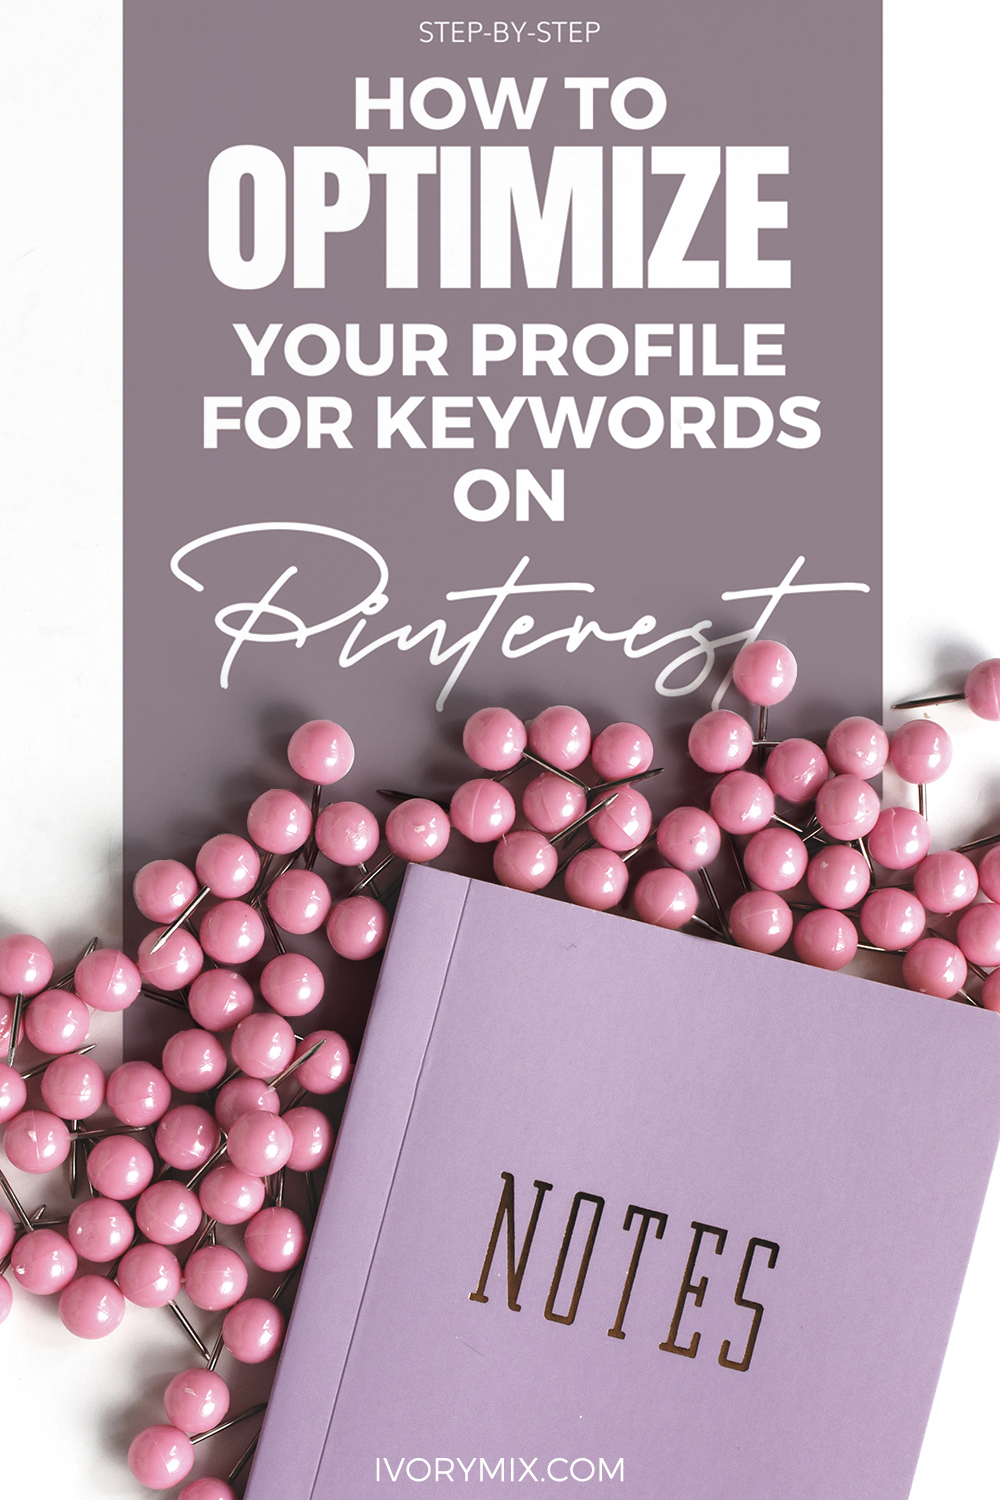 Keyword optimize your Pinterest profile and blog Step by step for better search ranking and marketing using SEO